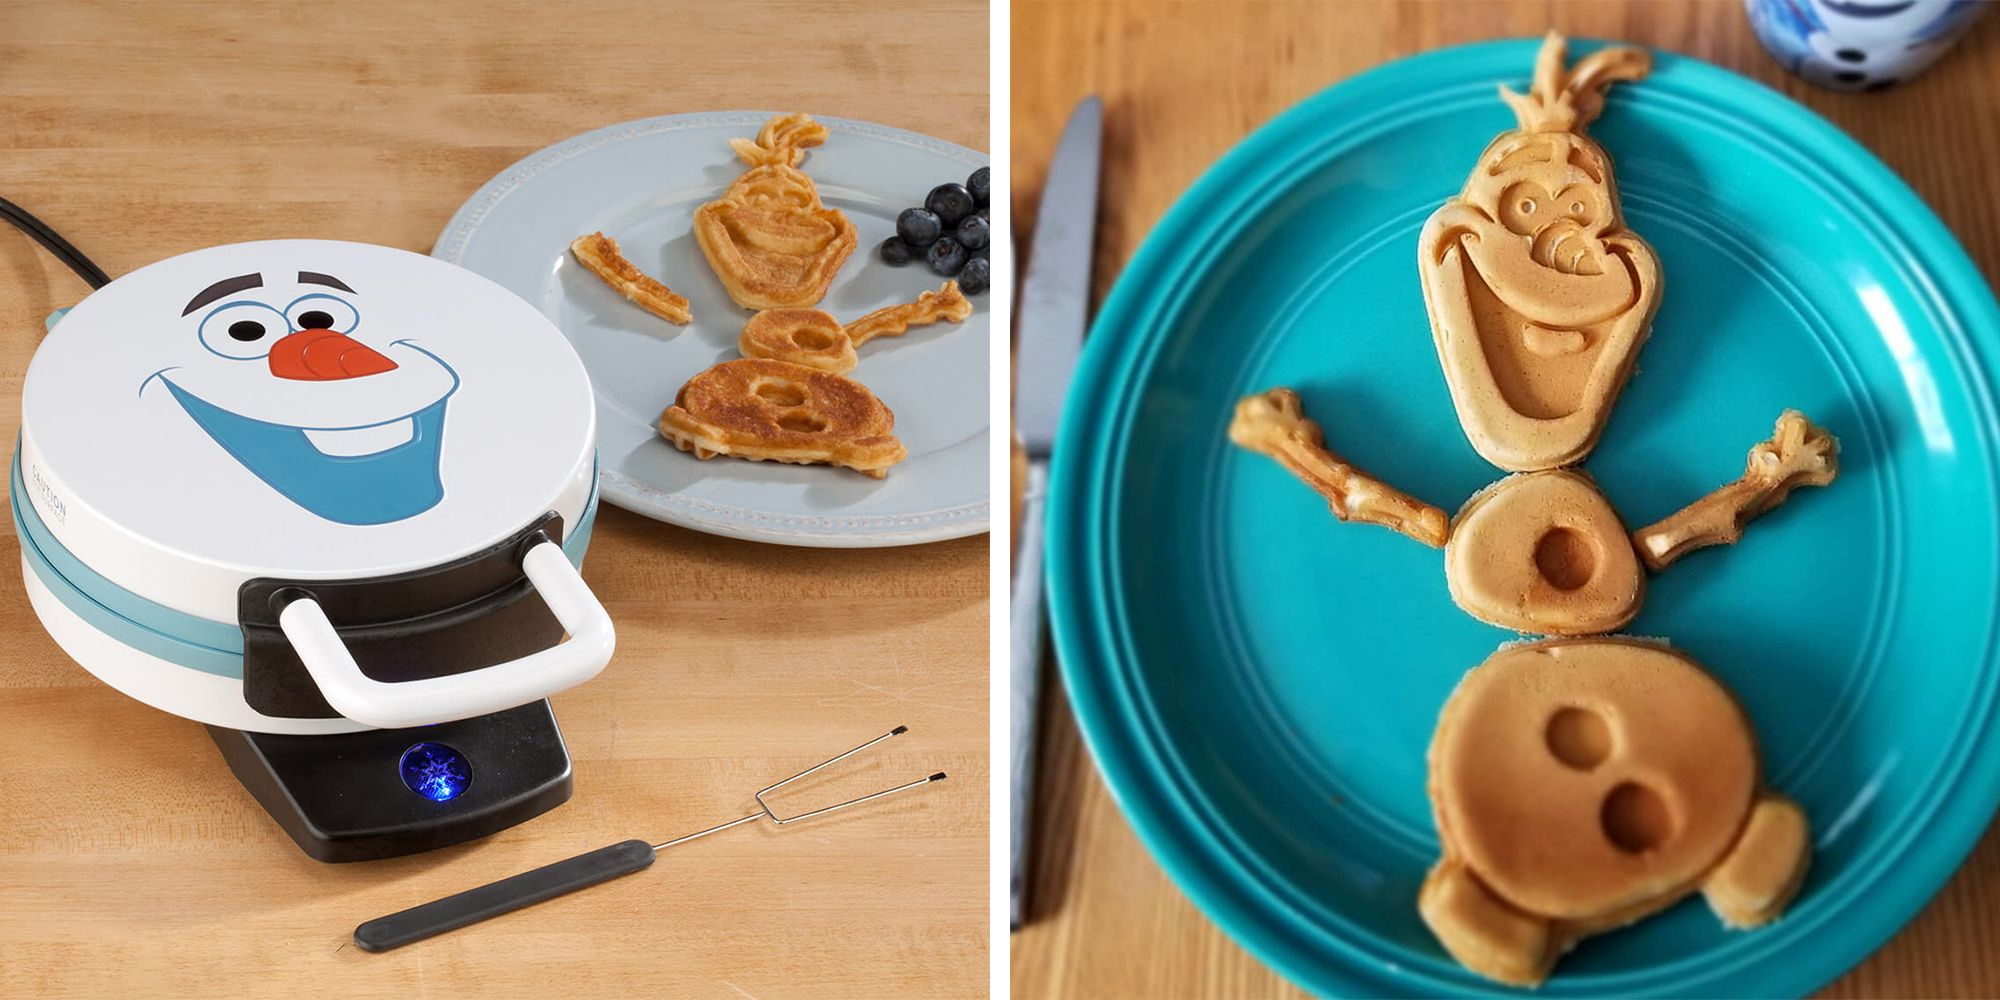 Kids Will Love This 'Frozen' Olaf Waffle Maker